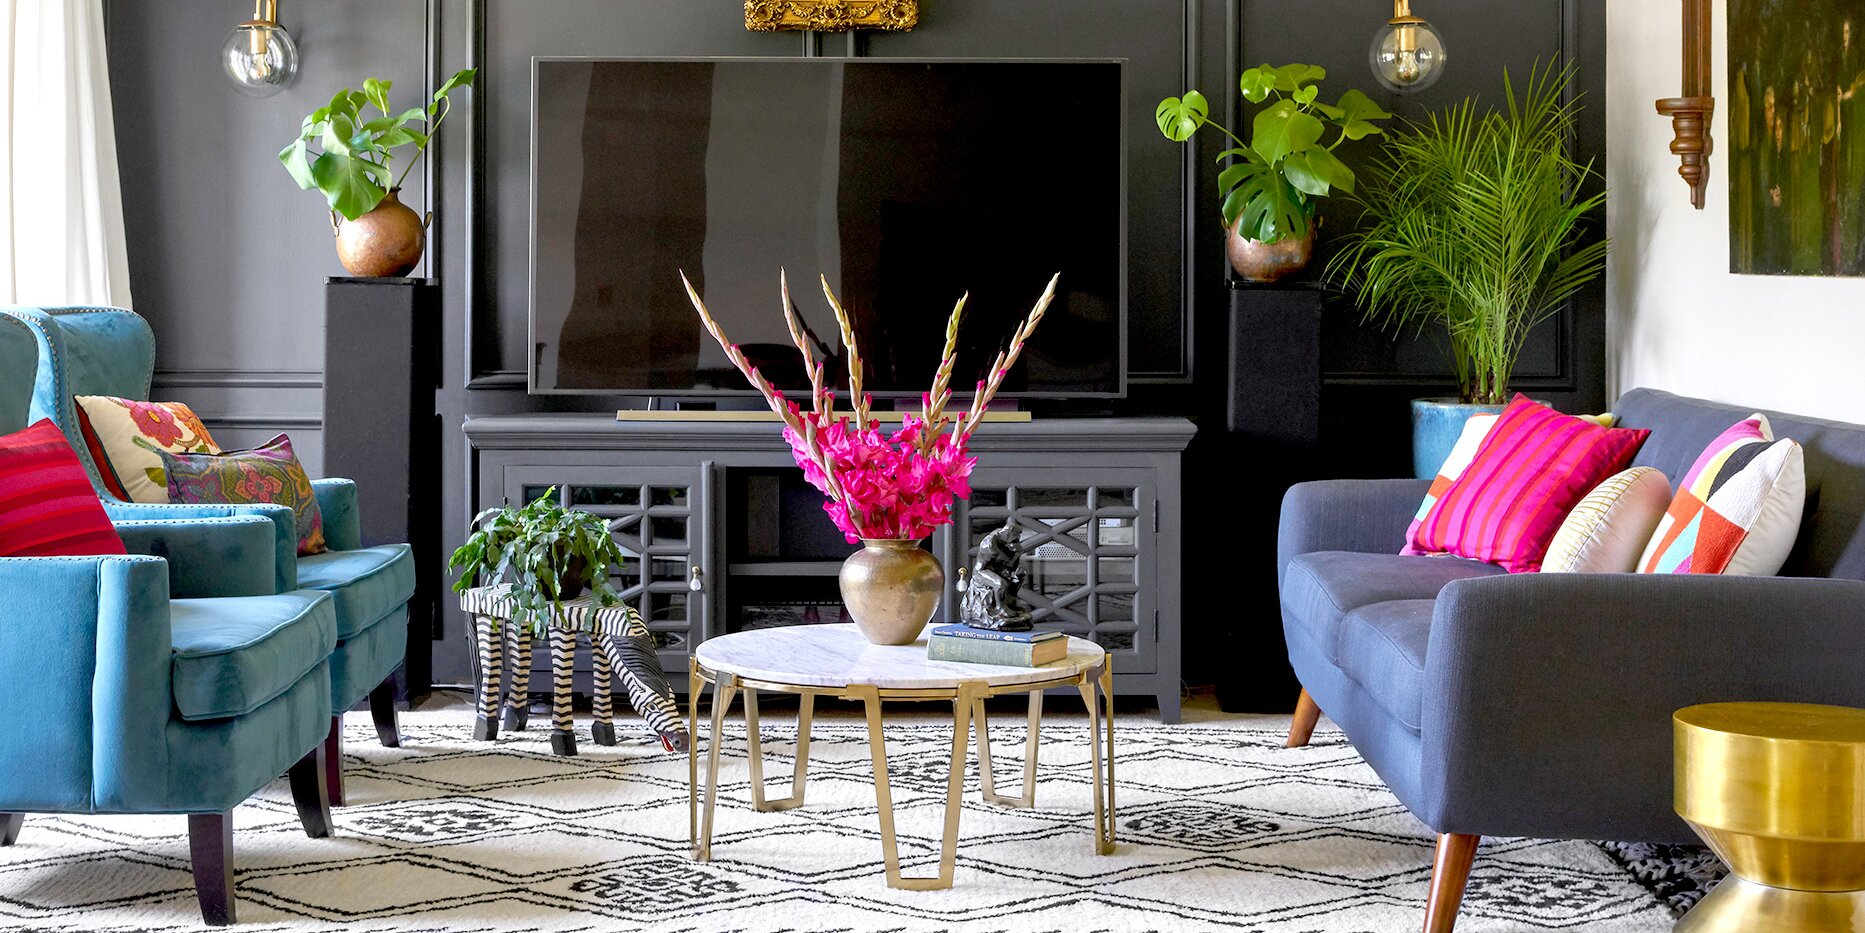 How to Decorate with Jewel Tones for a Bold, Colorful Home